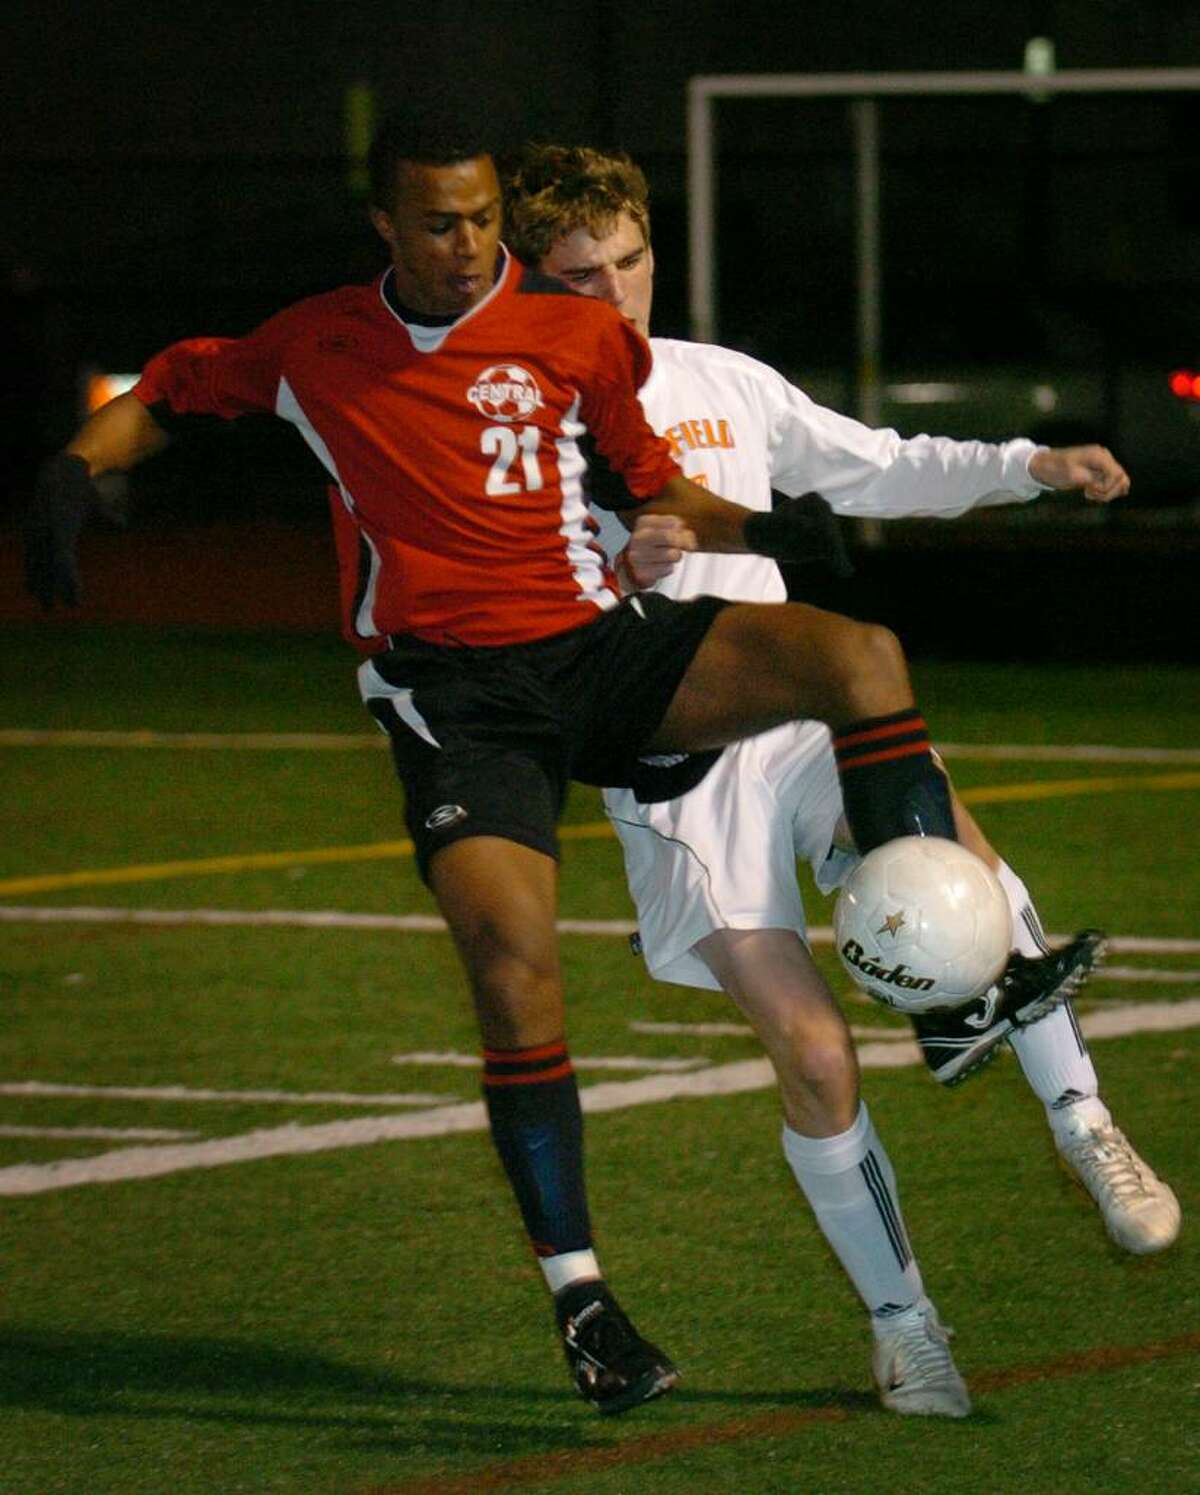 Bridgeport Central's Antonio DaGraca plays the ball in front of Ridgefield defender Colin Paulish during Monday's FCIAC semi-final matchup at Ludlowe High School in Fairfield.